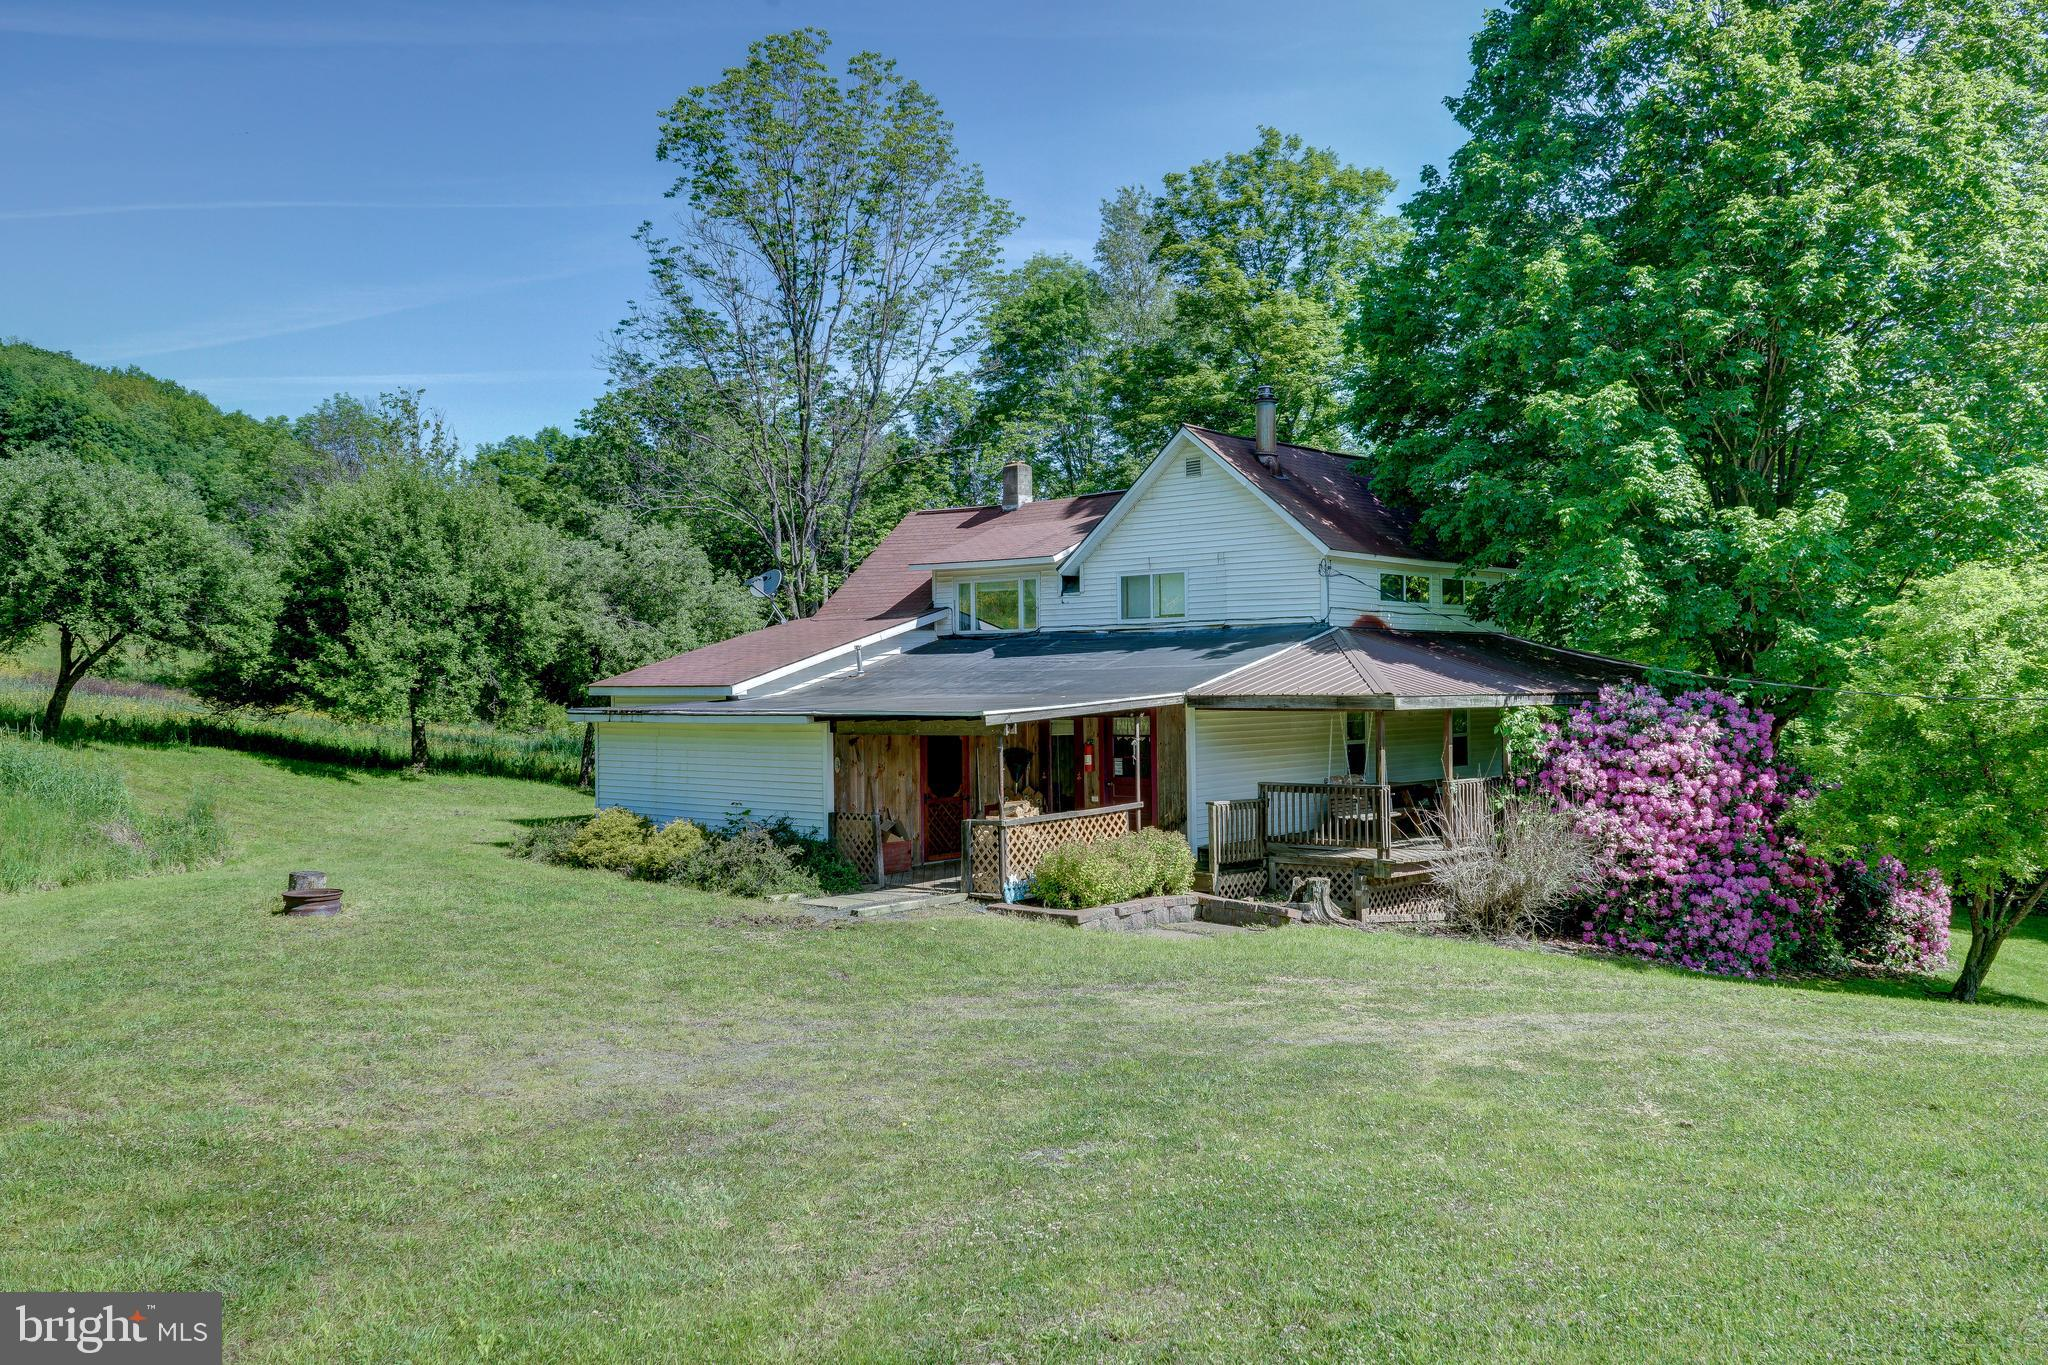 1770 COLEMAN MILLS ROAD, ROULETTE, PA 16746